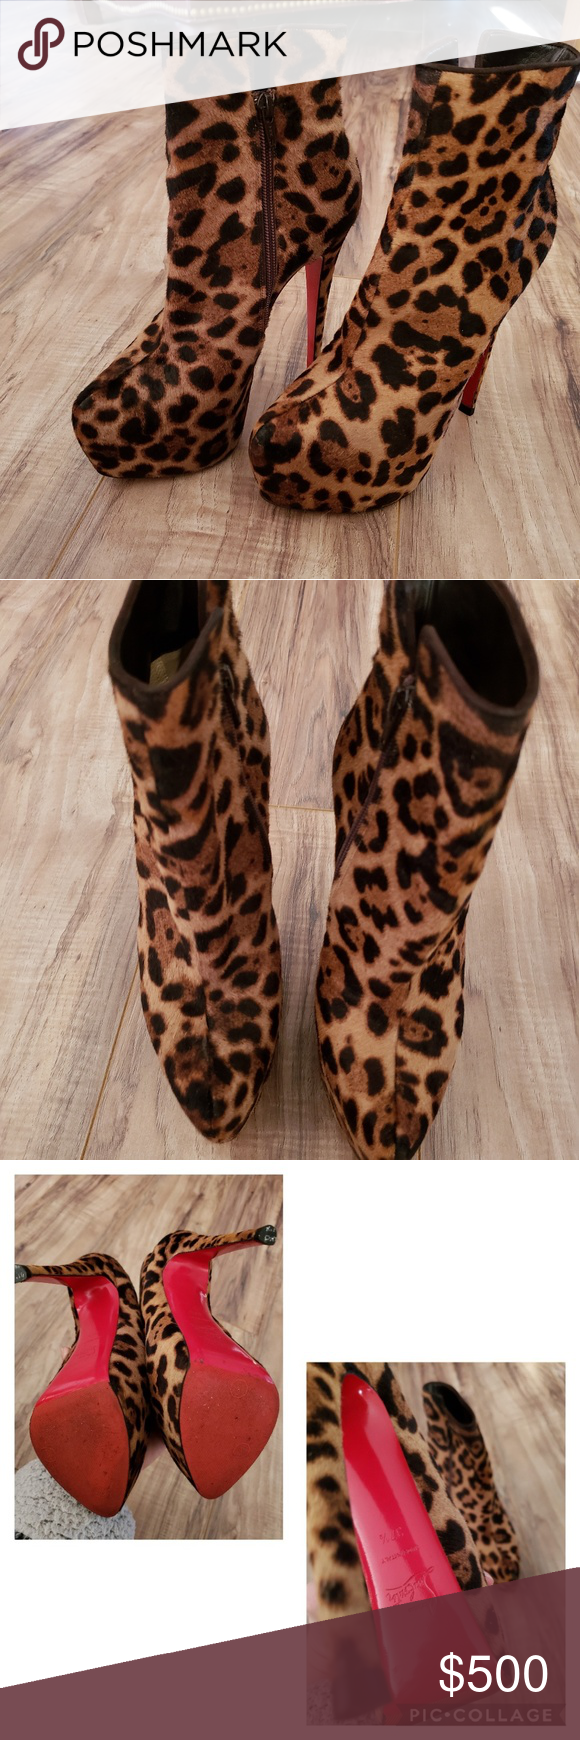 caae51797563b Christian Louboutin Daf Booty 160 Leopard Pony Ankle Boots 37.5 Made in  Italy Easy to walk